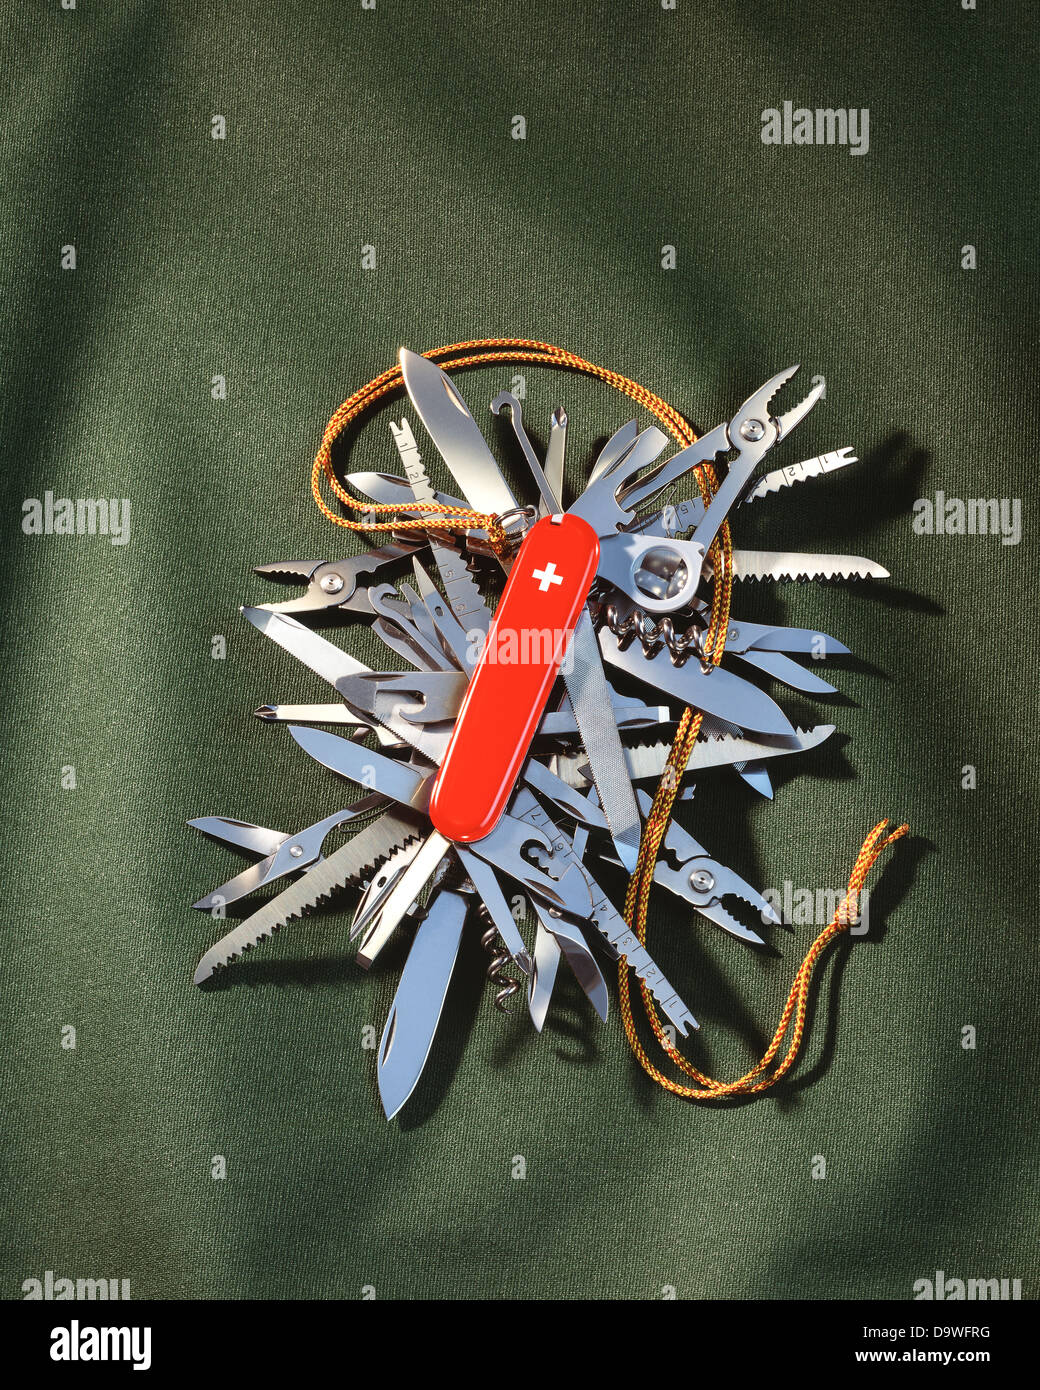 swiss army knife - Stock Image